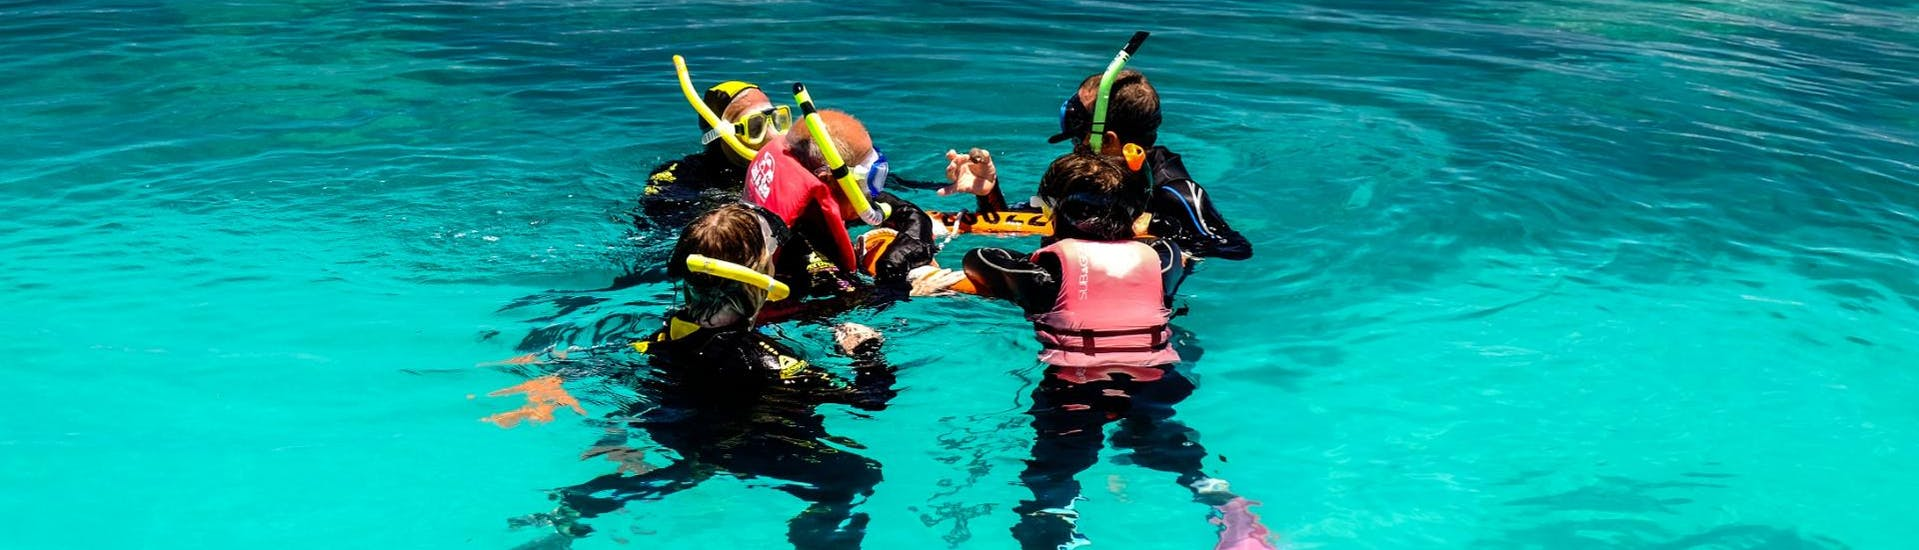 During the Great Barrier Reef Cruise to Michaelmas Cay with Snorkeling, a group of guest is about to explore the vibrant marine life under the guidance of an experienced guide from Ocean Spirit Cruises.